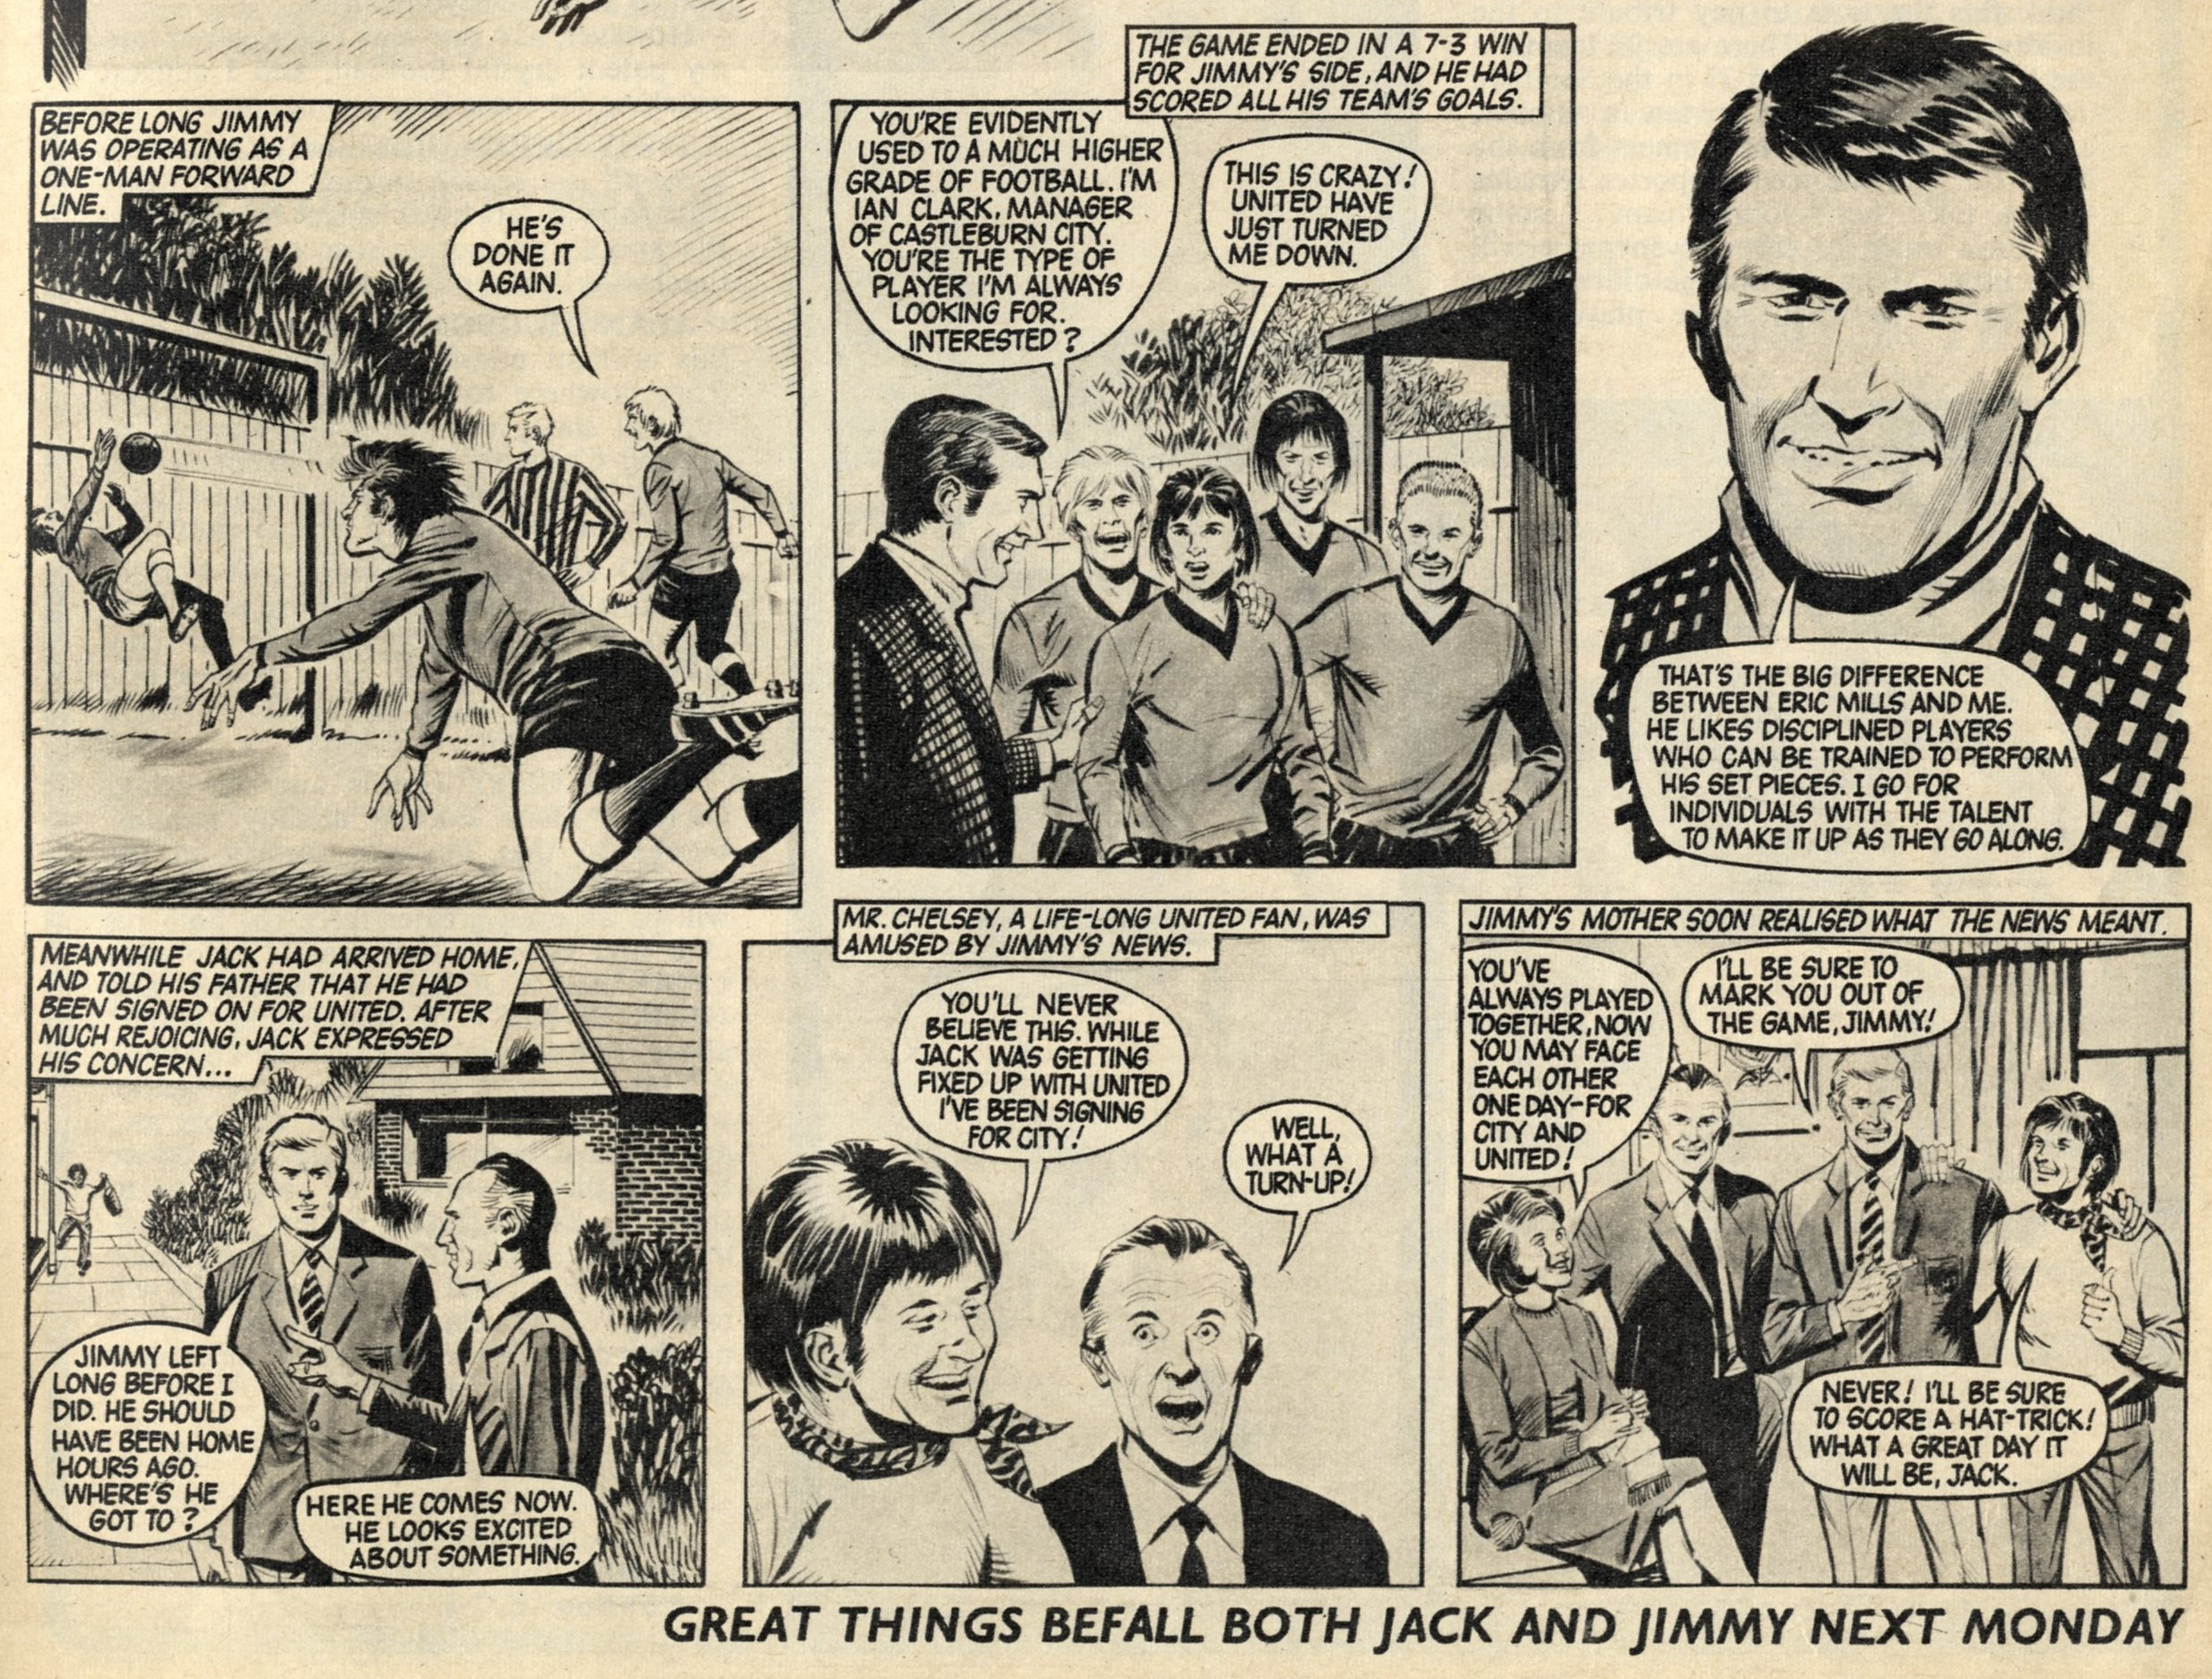 Jimmy of City: Barrie Mitchell (artist)